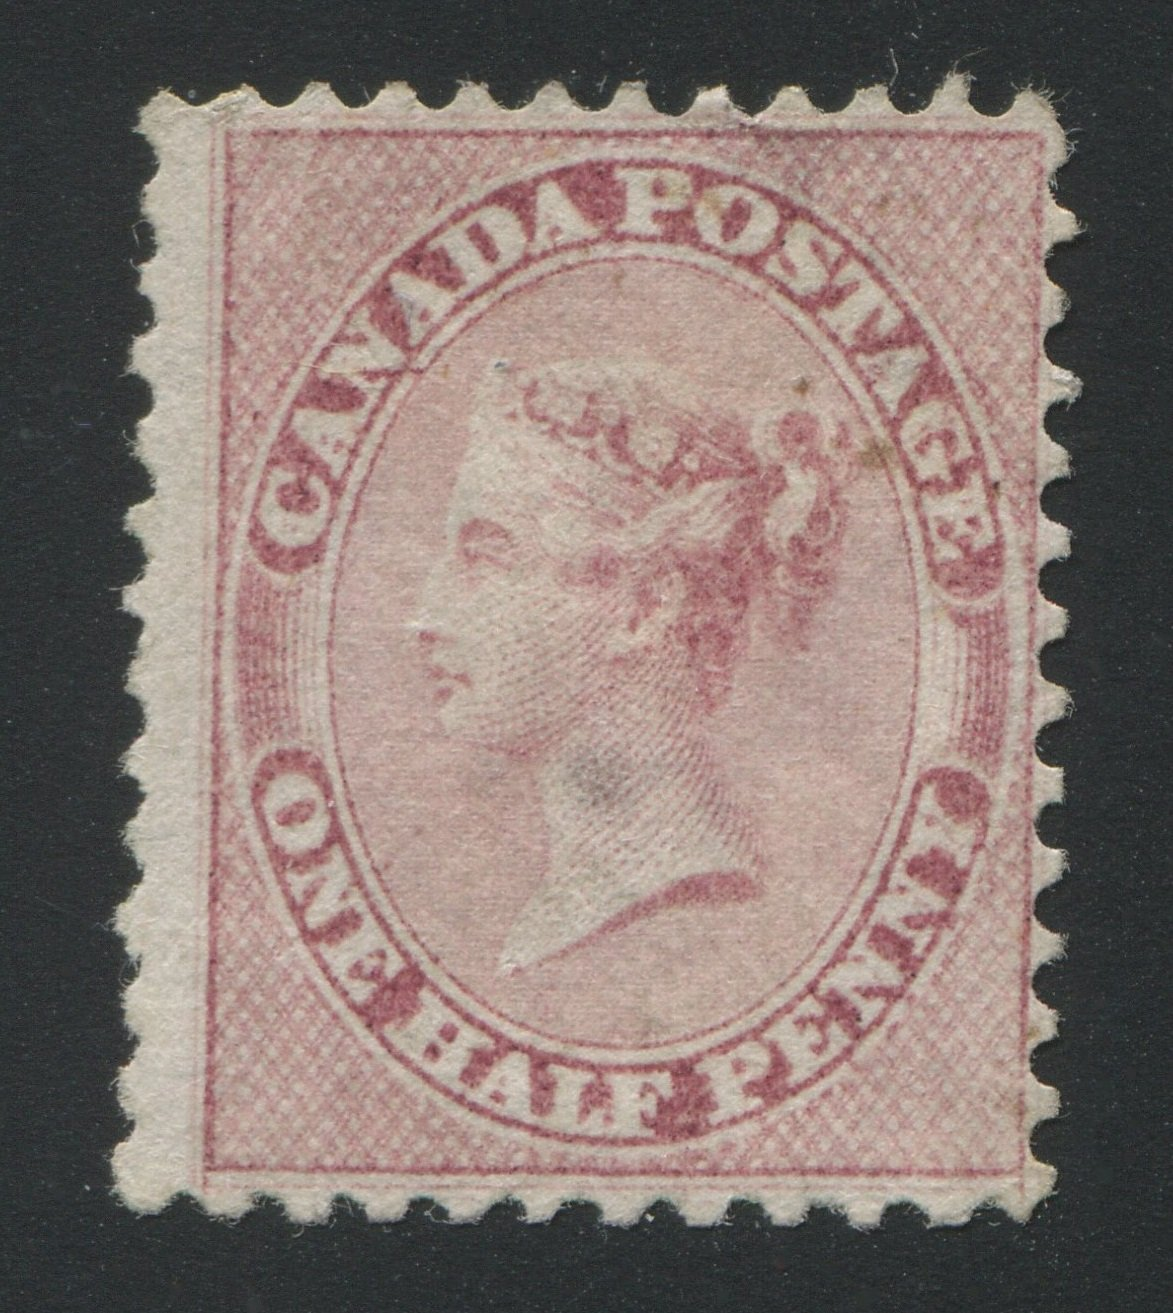 0011CA1709 - Canada #11i - Used Strong Re-Entry - Deveney Stamps Ltd. Canadian Stamps